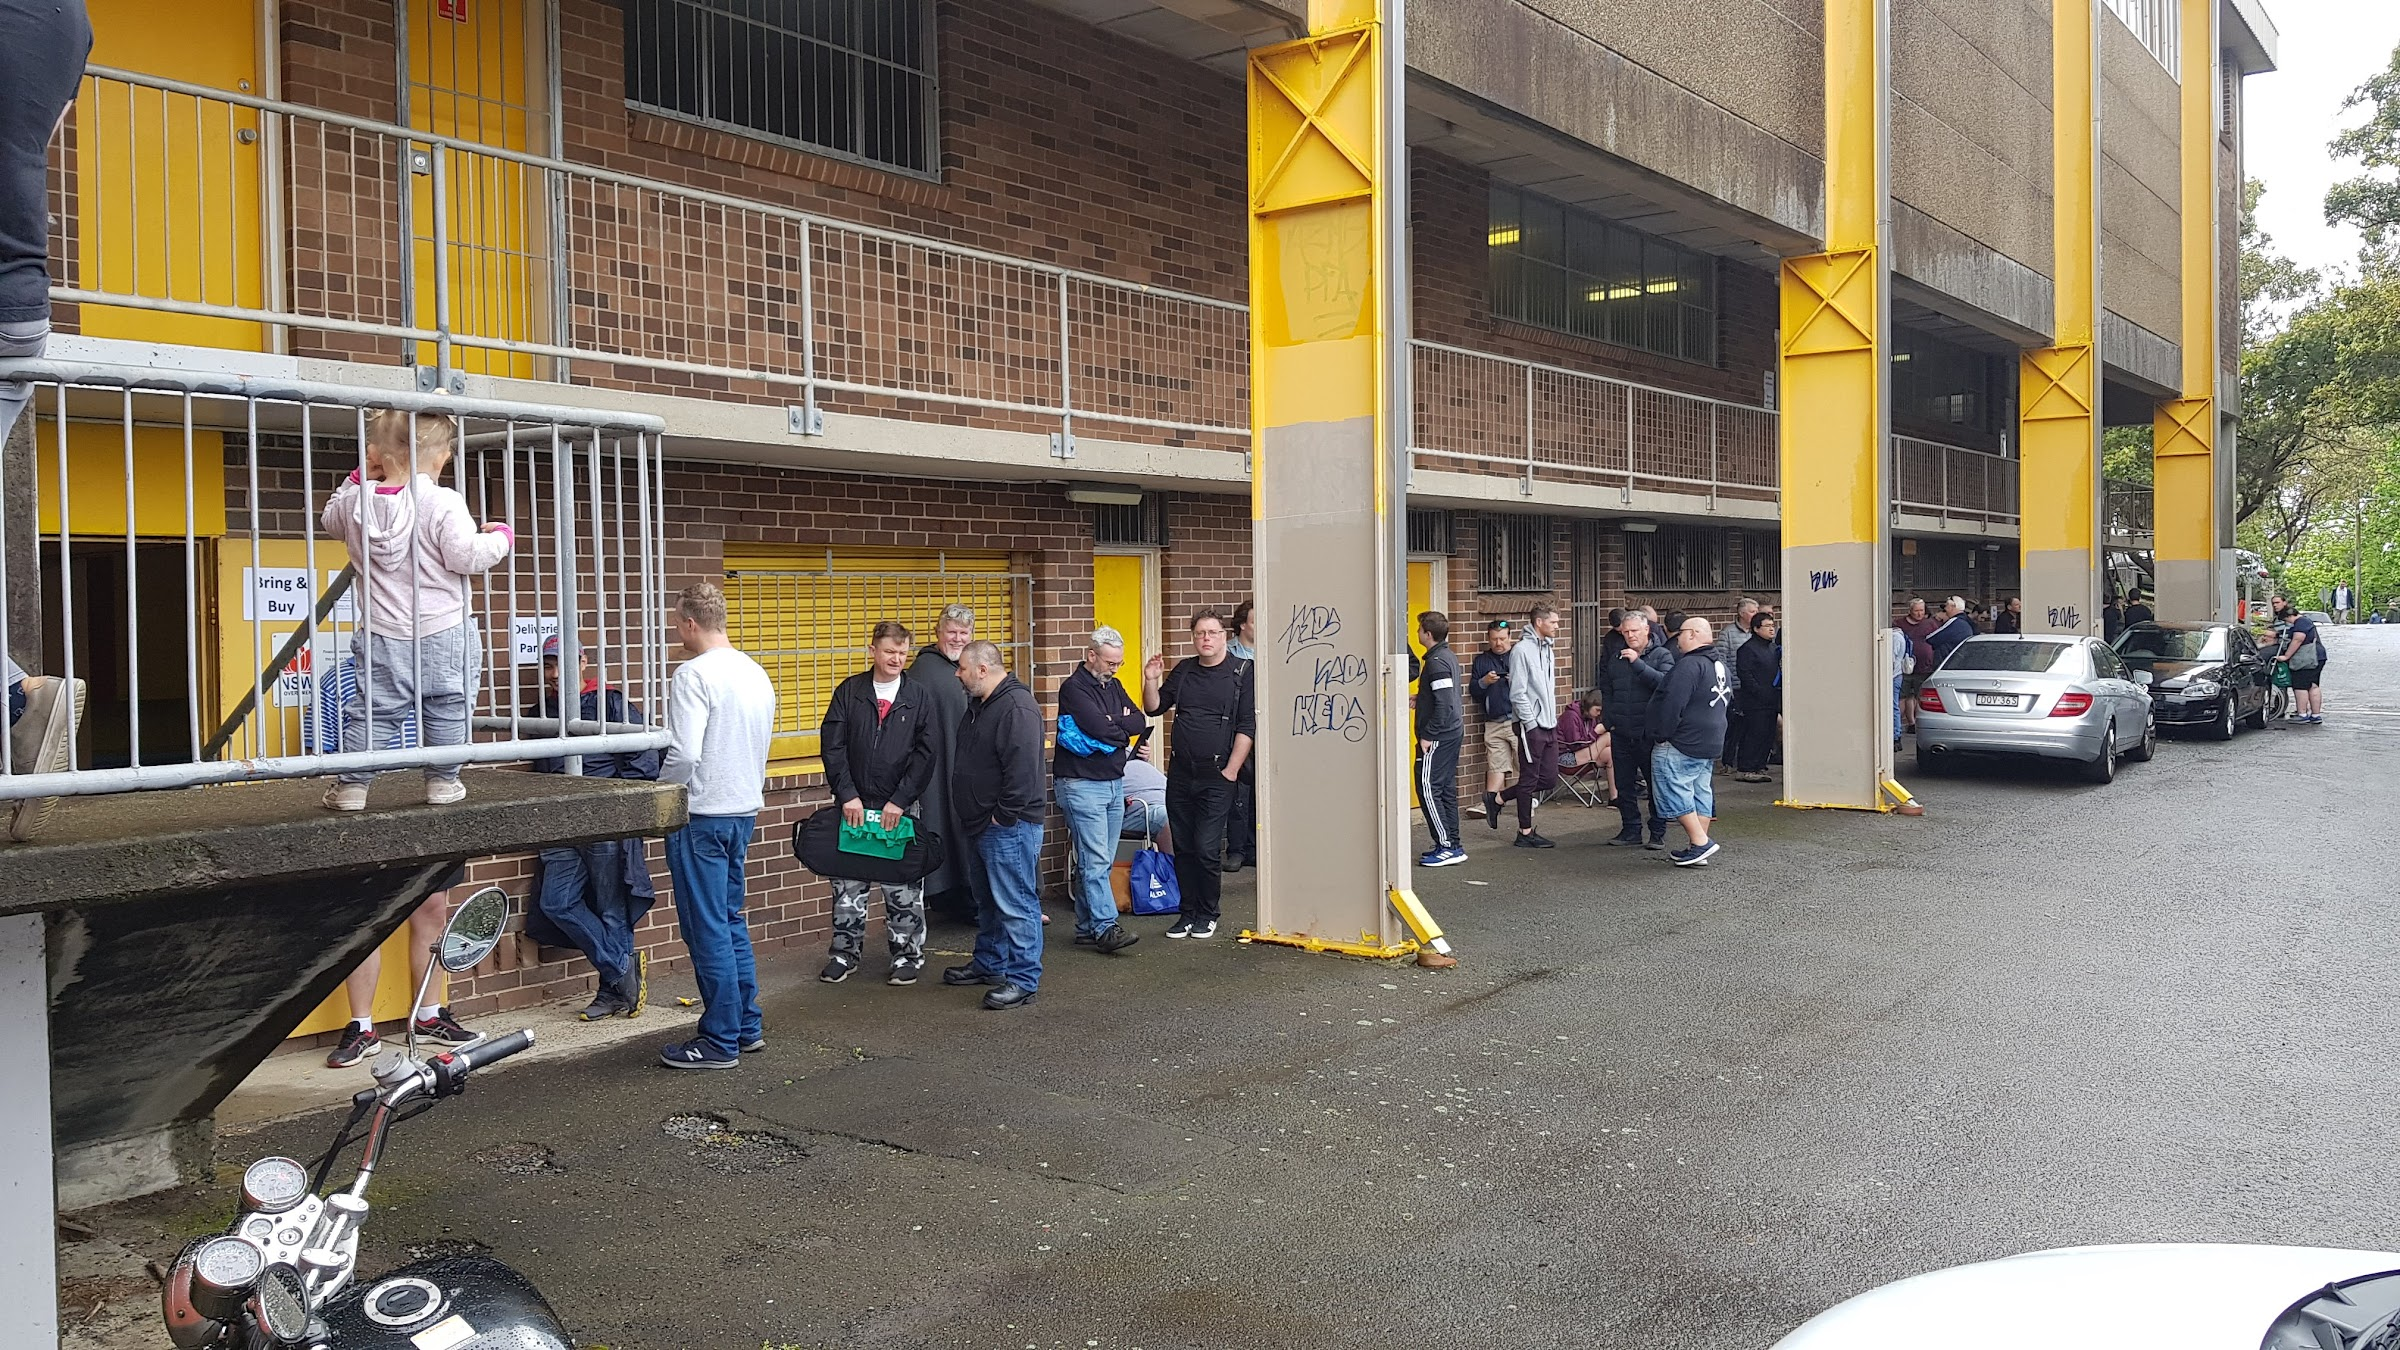 Lining up in the morning for first picks at the 2nd hand Bring And Buy hall